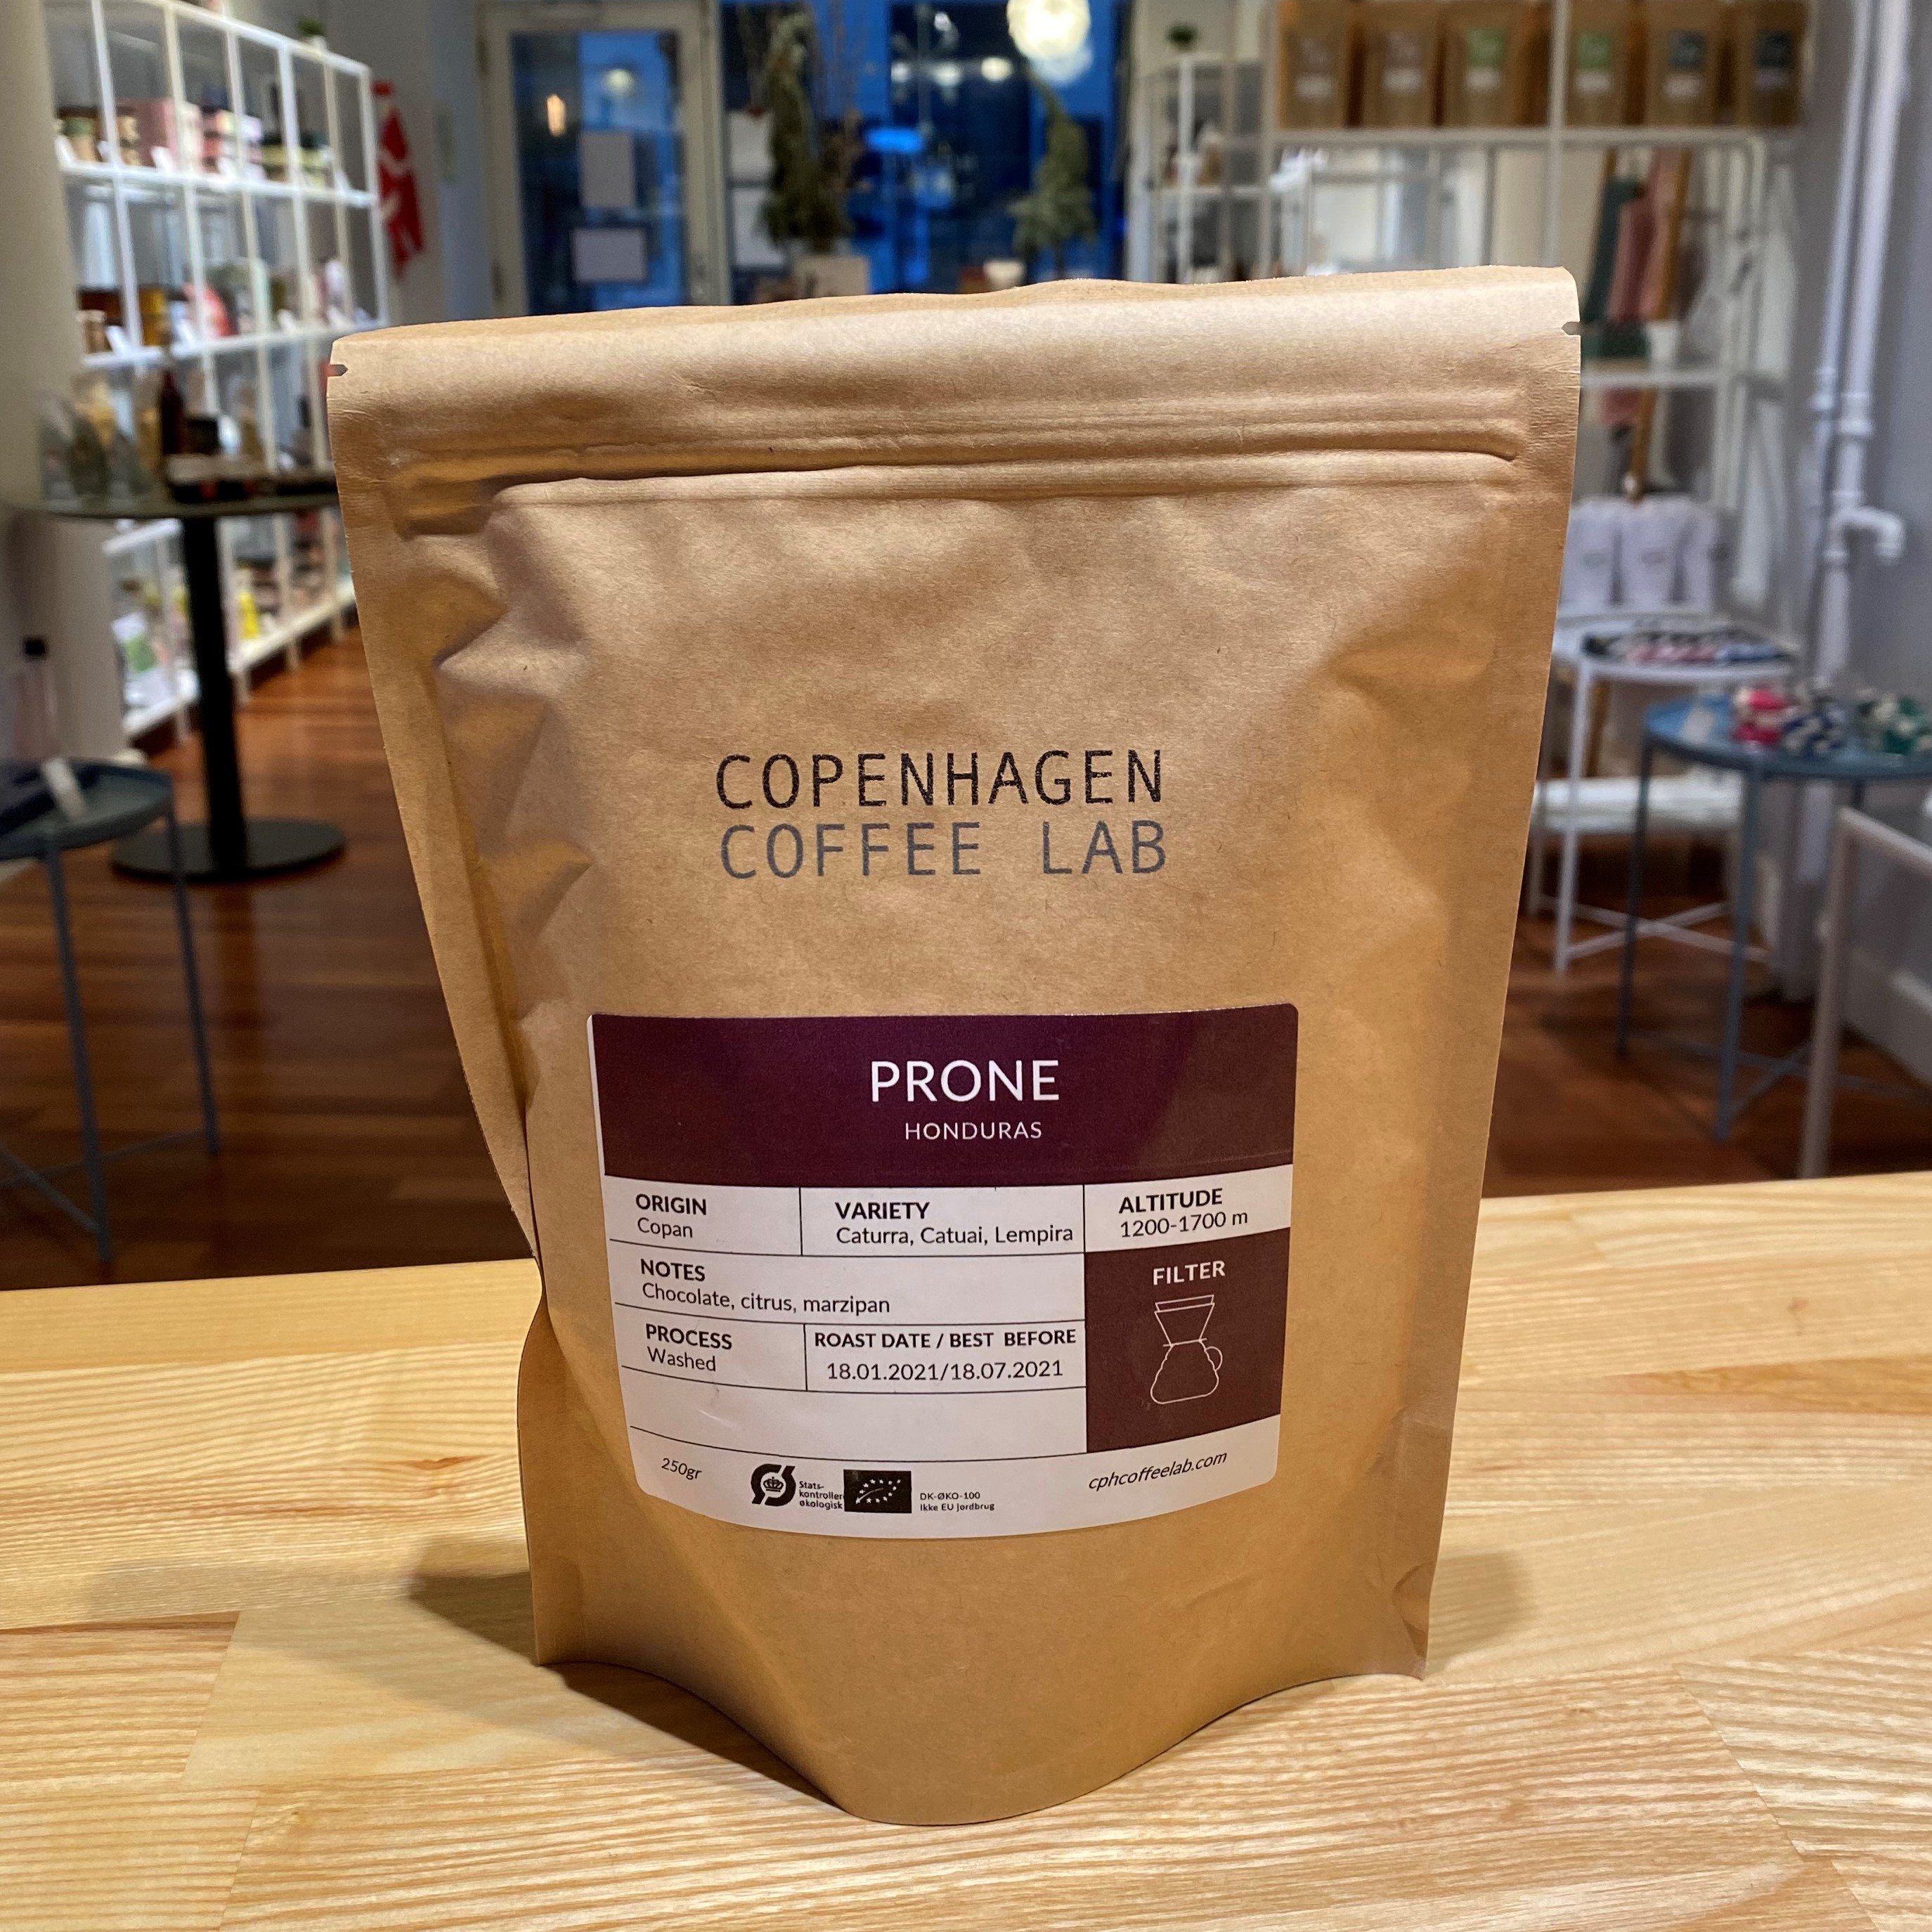 Copenhagen Coffee Lab - Prone, Honduras